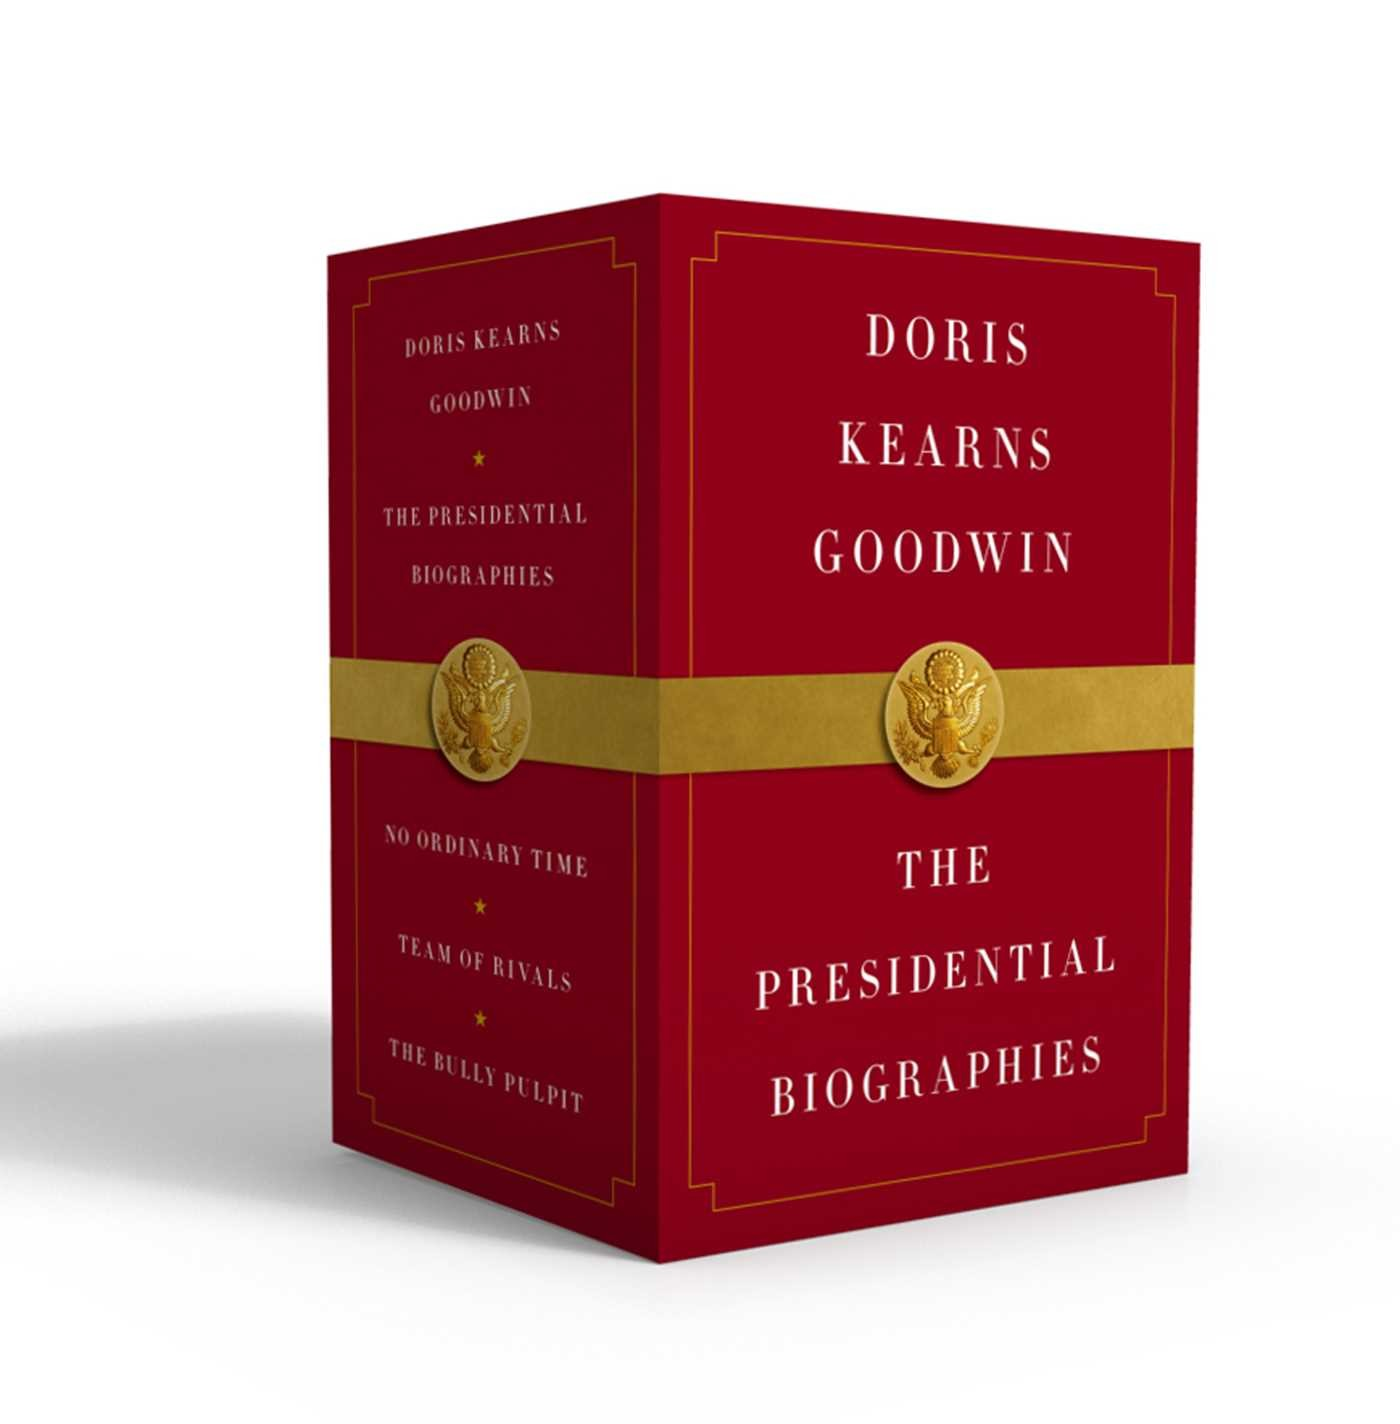 Doris kearns goodwin the presidential biographies 9781982103224.in17